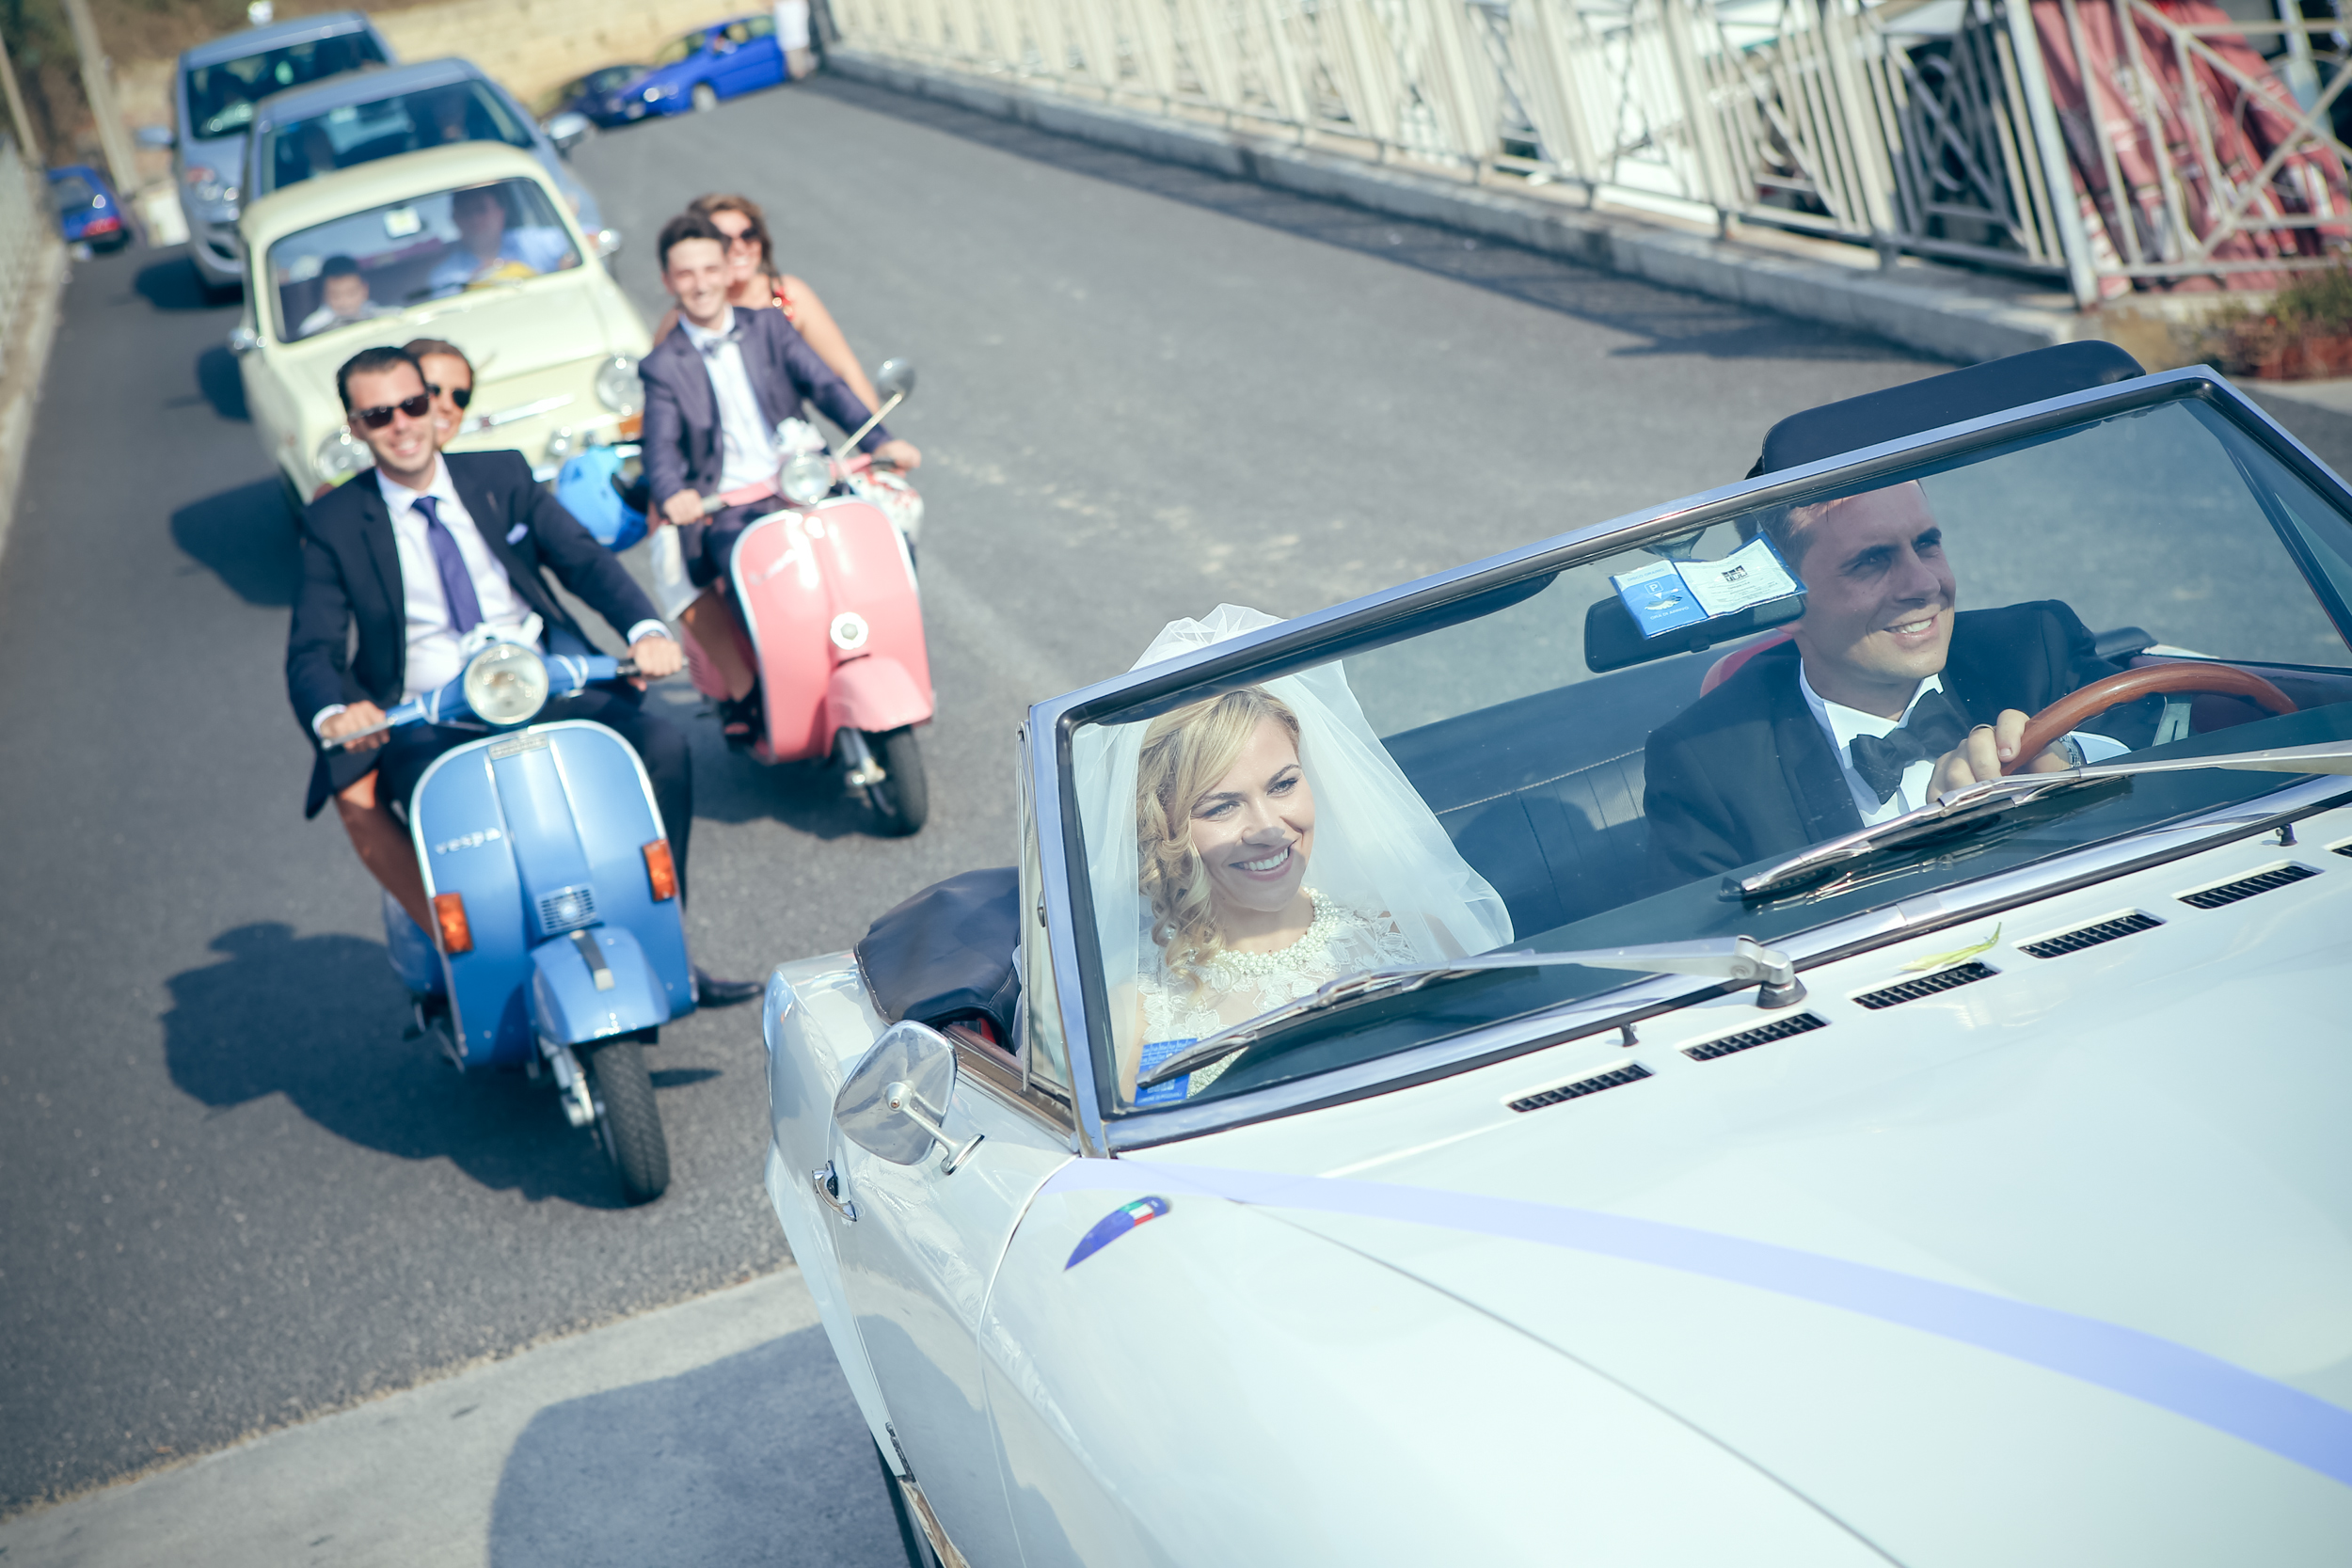 art-of-perfection-event-design-luxury-destination-wedding-planner-italy-connie-antonio-car-vespa